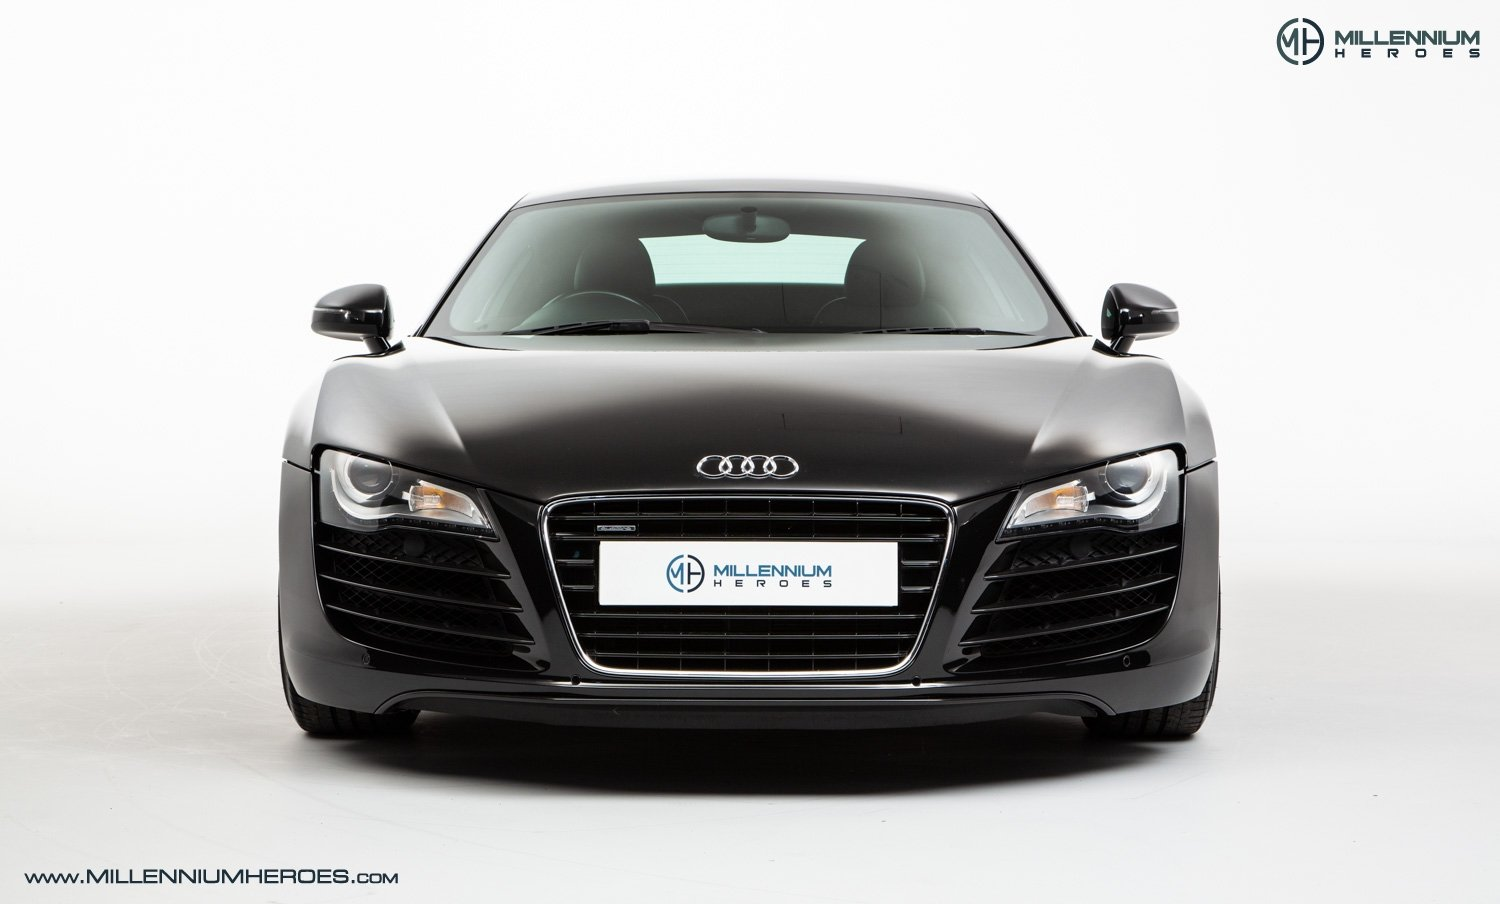 2008 AUDI R8 QUATTRO // 6 SPEED MANUAL // FULL AUDI SERVICE HISTO For Sale (picture 2 of 19)